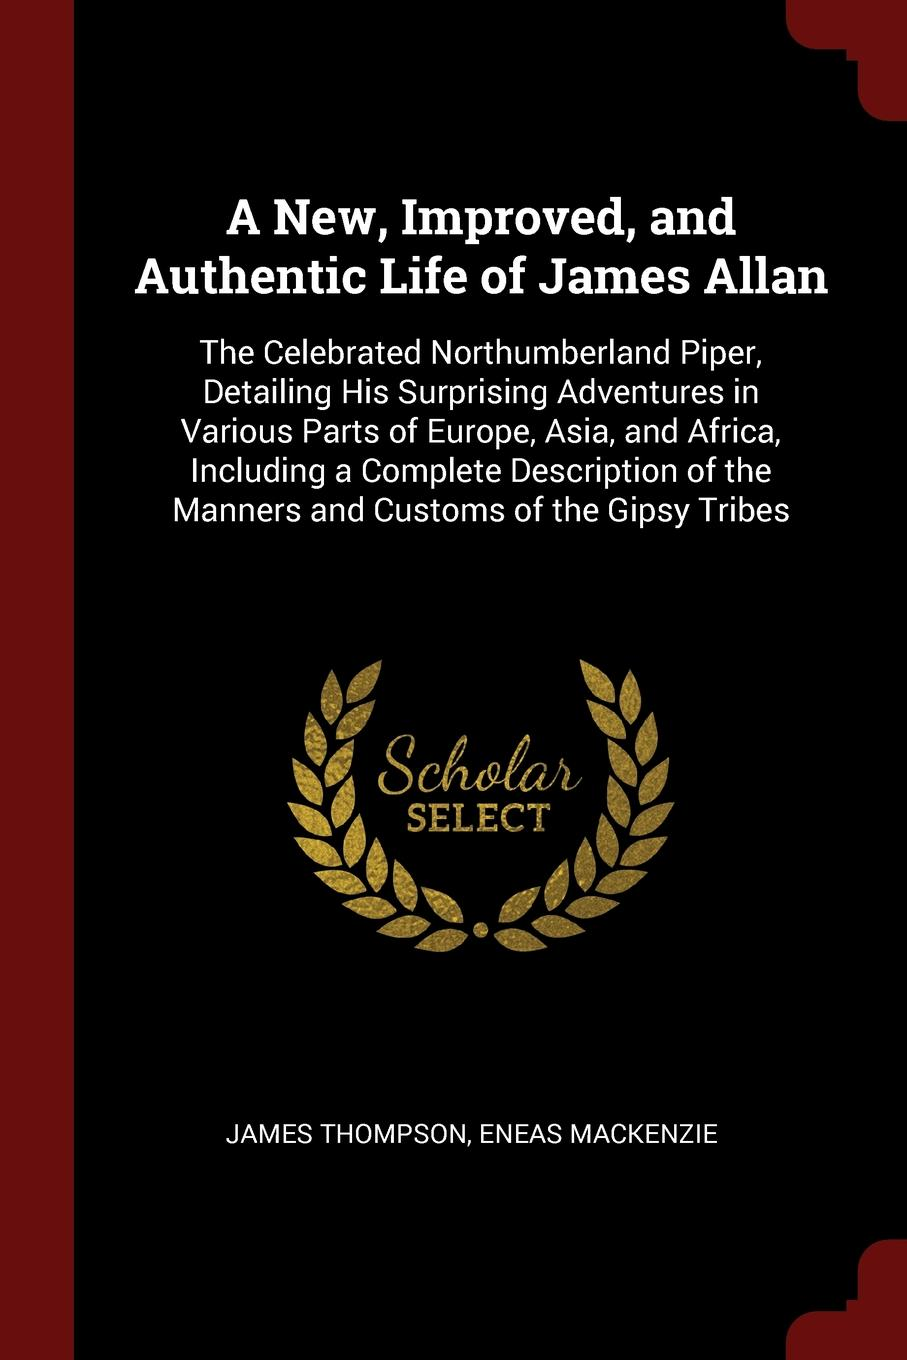 James Thompson, Eneas Mackenzie A New, Improved, and Authentic Life of James Allan. The Celebrated Northumberland Piper, Detailing His Surprising Adventures in Various Parts of Europe, Asia, and Africa, Including a Complete Description of the Manners and Customs of the Gipsy Tribes new and original zd 70n optex photoelectric switch photoelectric sensor npn output